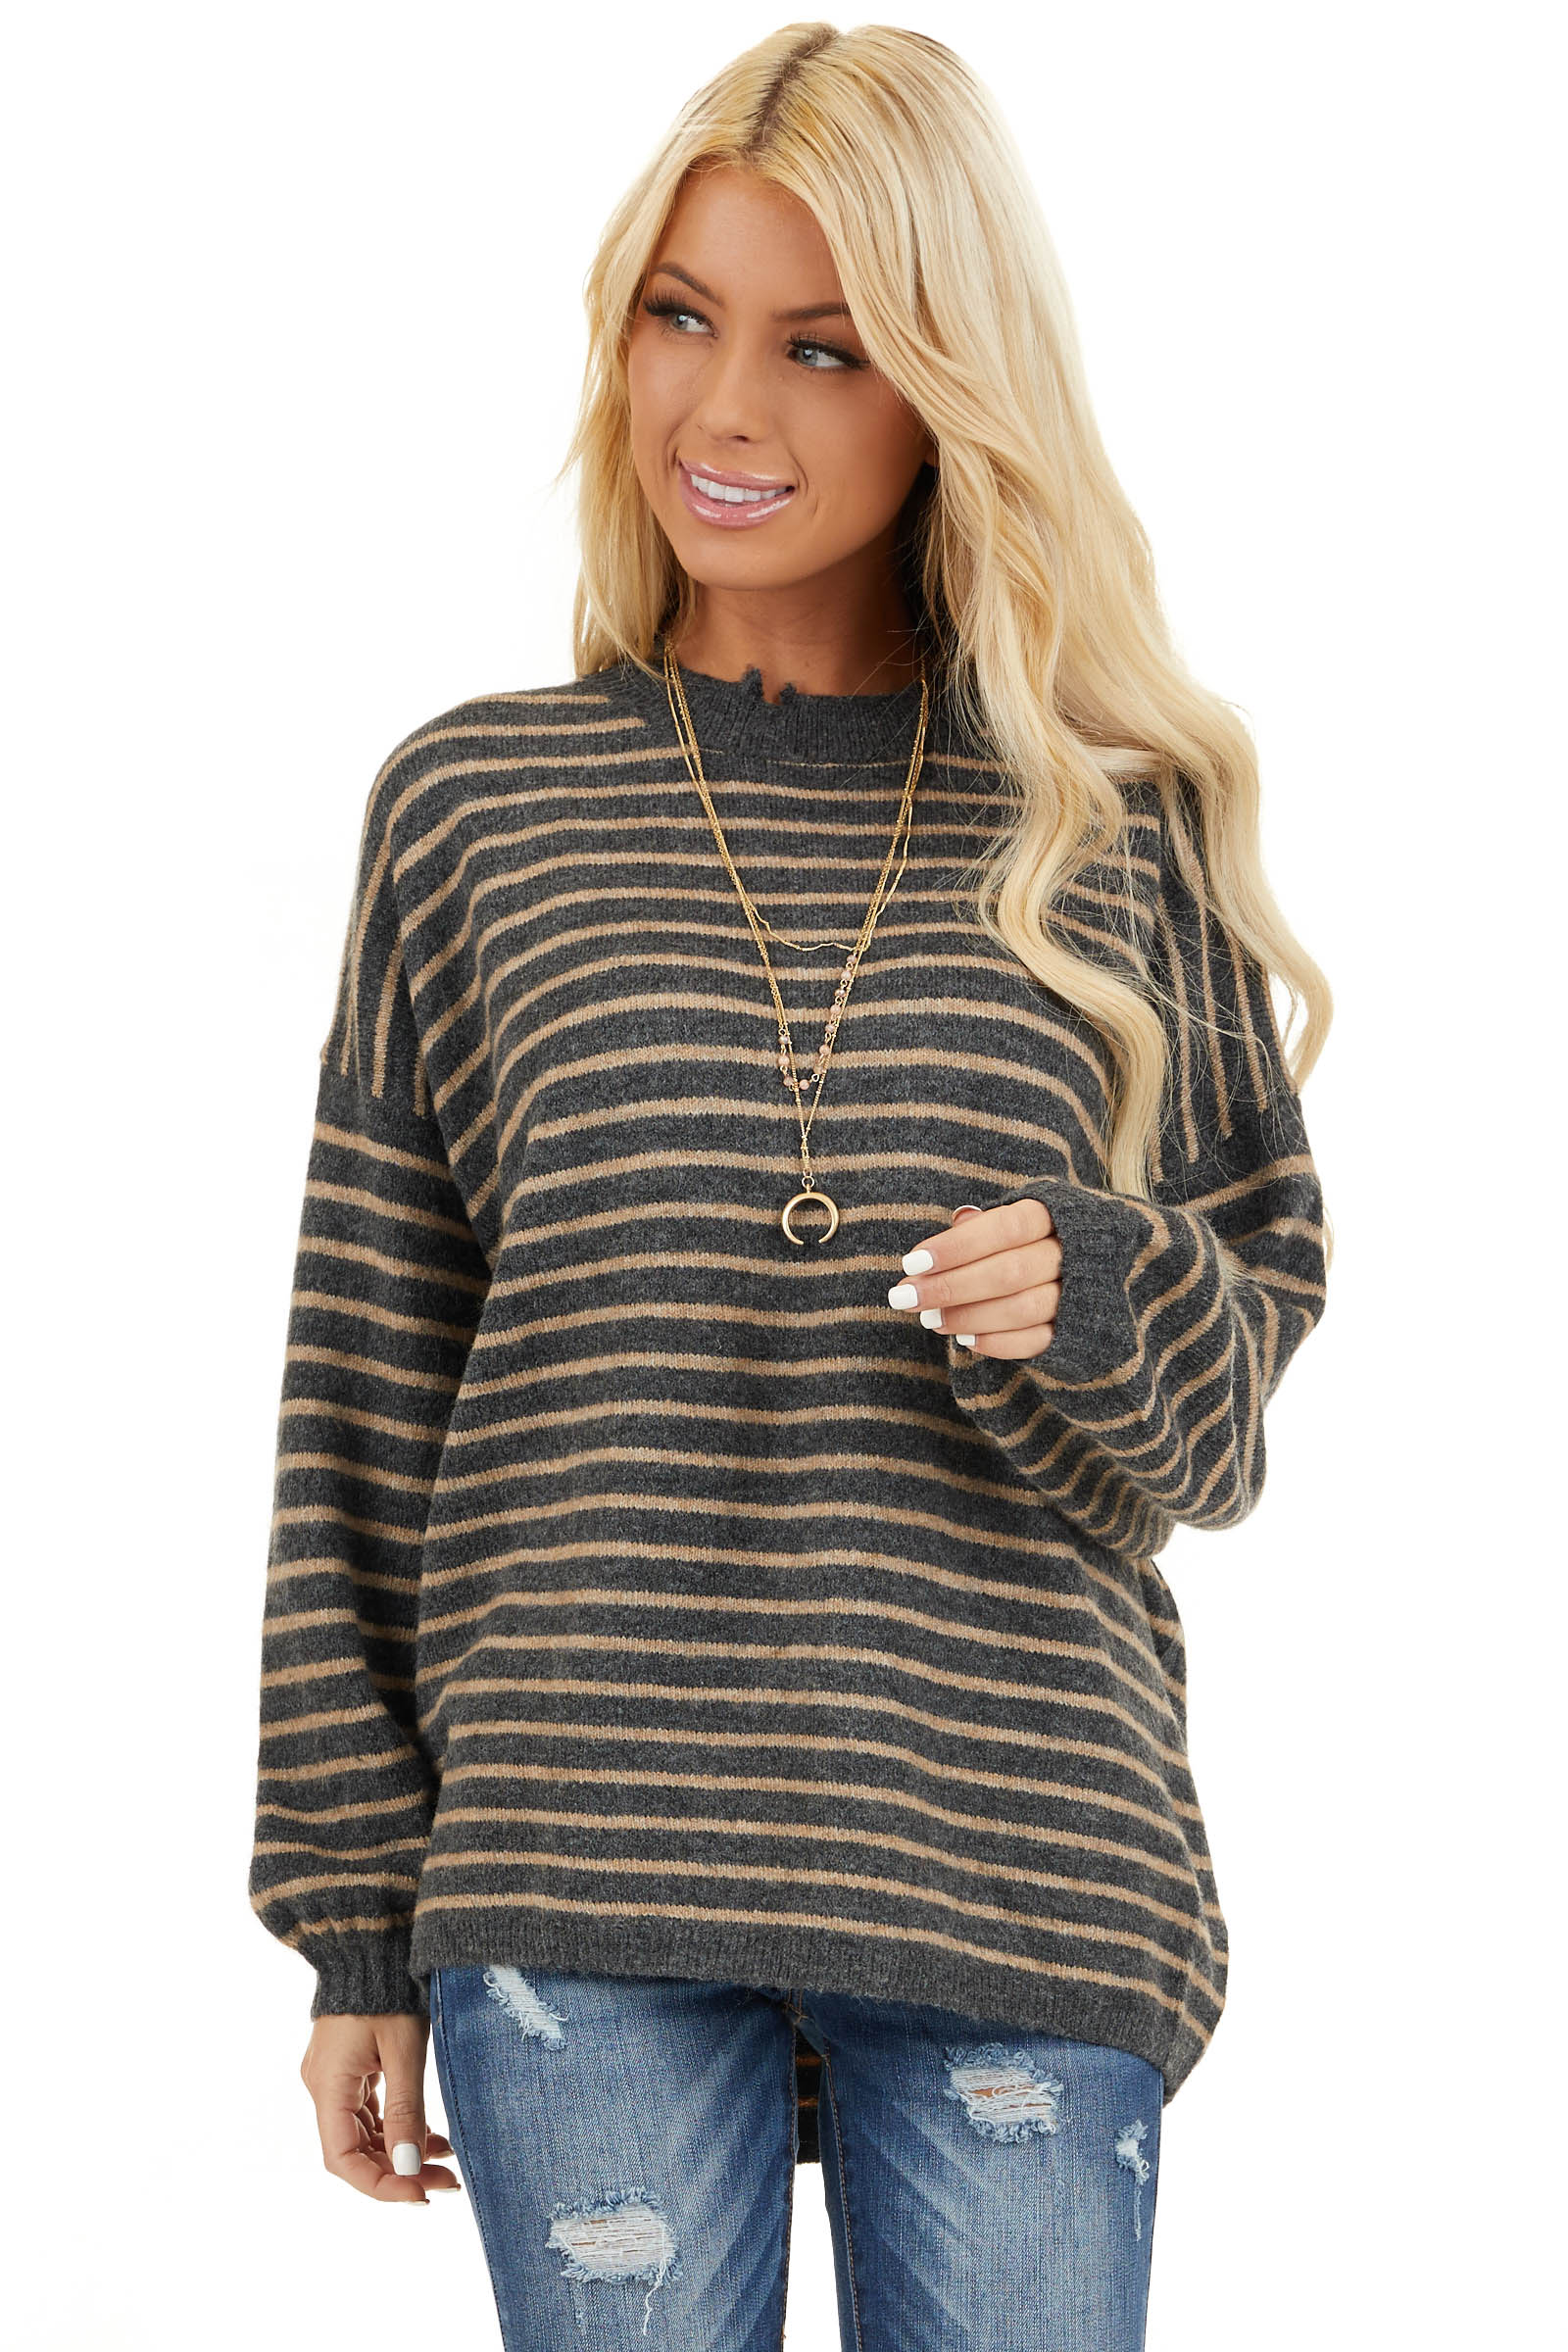 Black and Khaki Striped Sweater with Distressed Neckline front close up